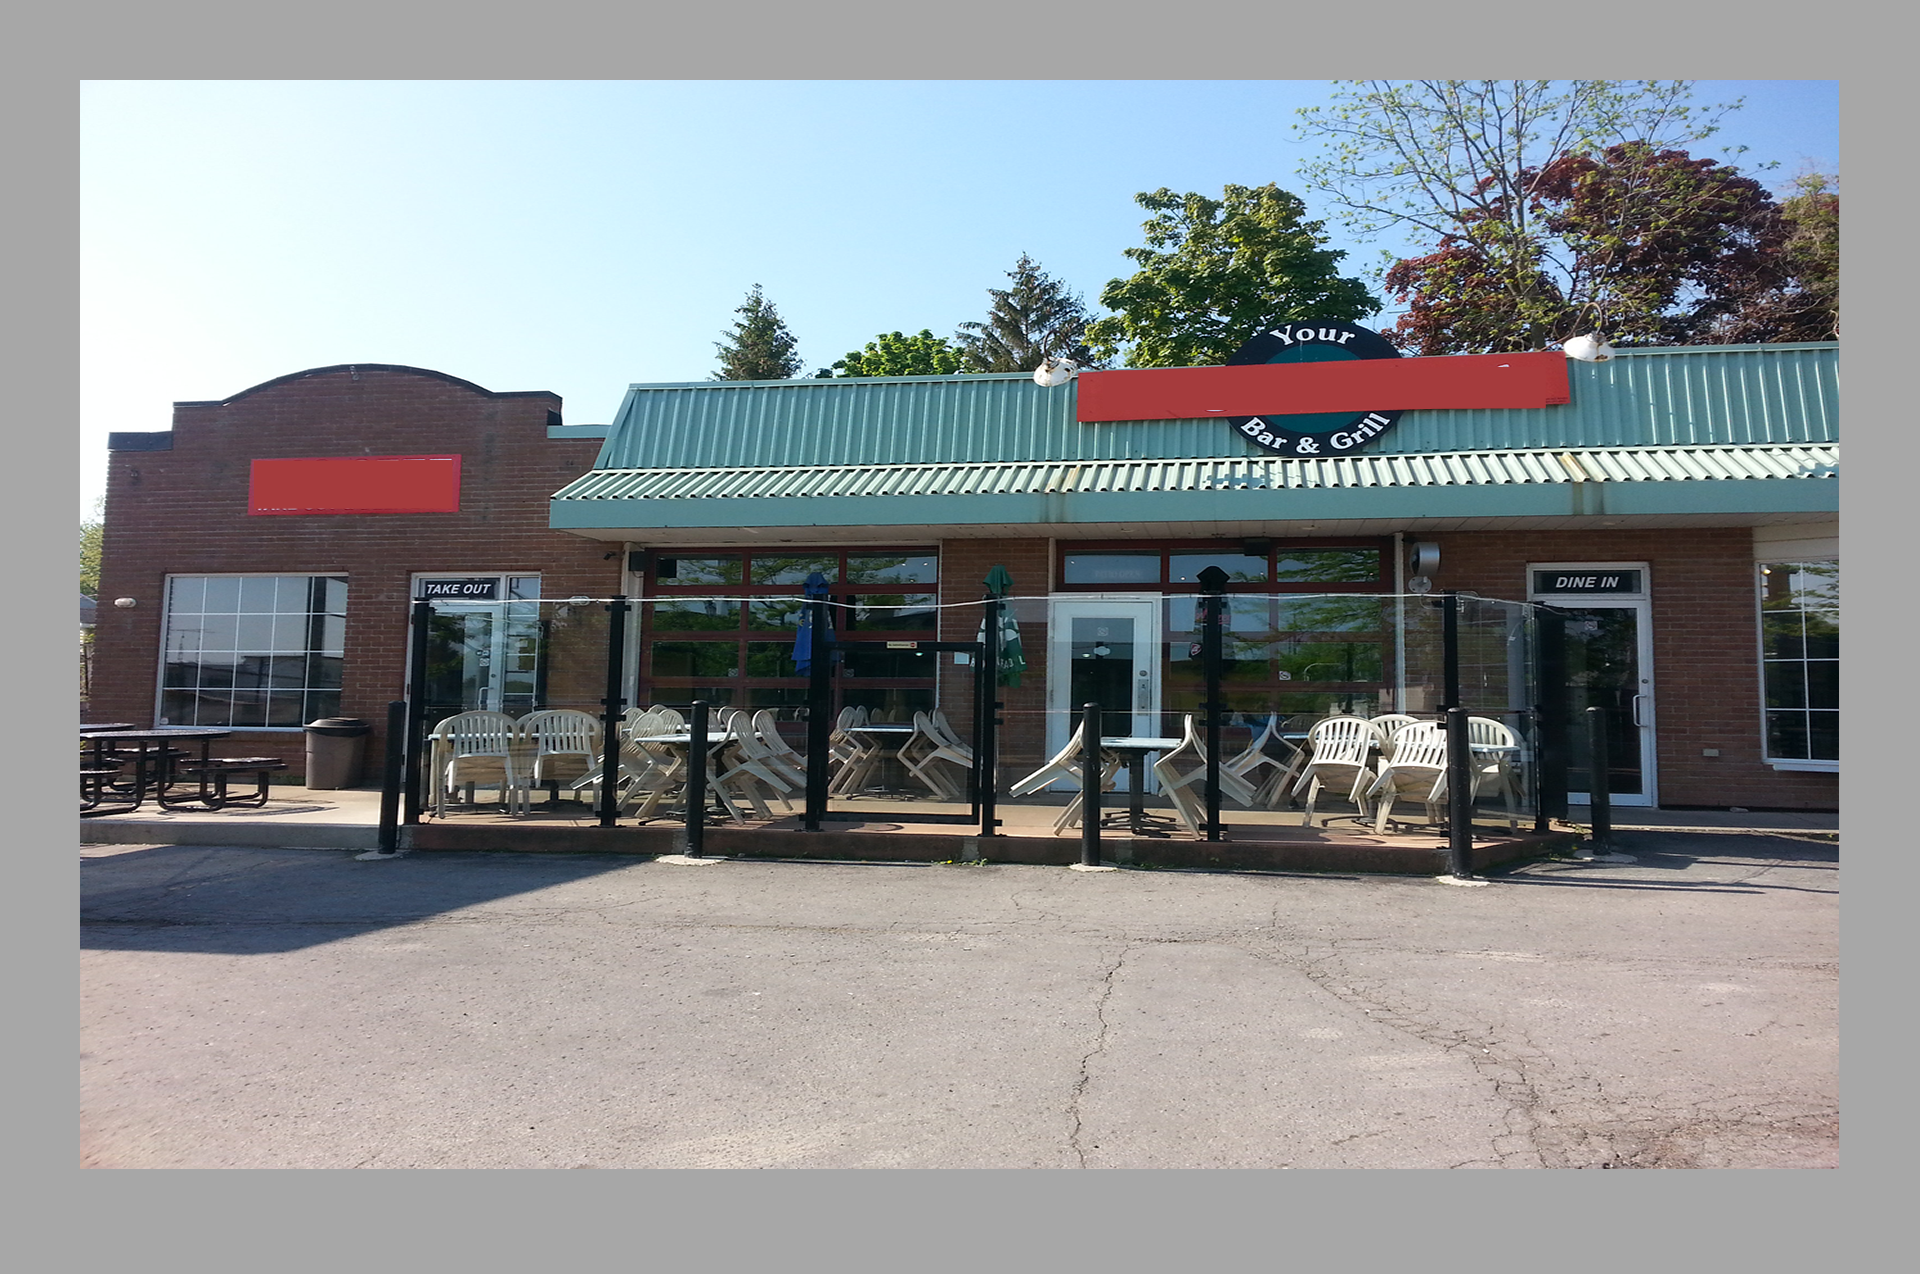 Restaurant/Pub/Bar/Pizzeria Business for sale with Property